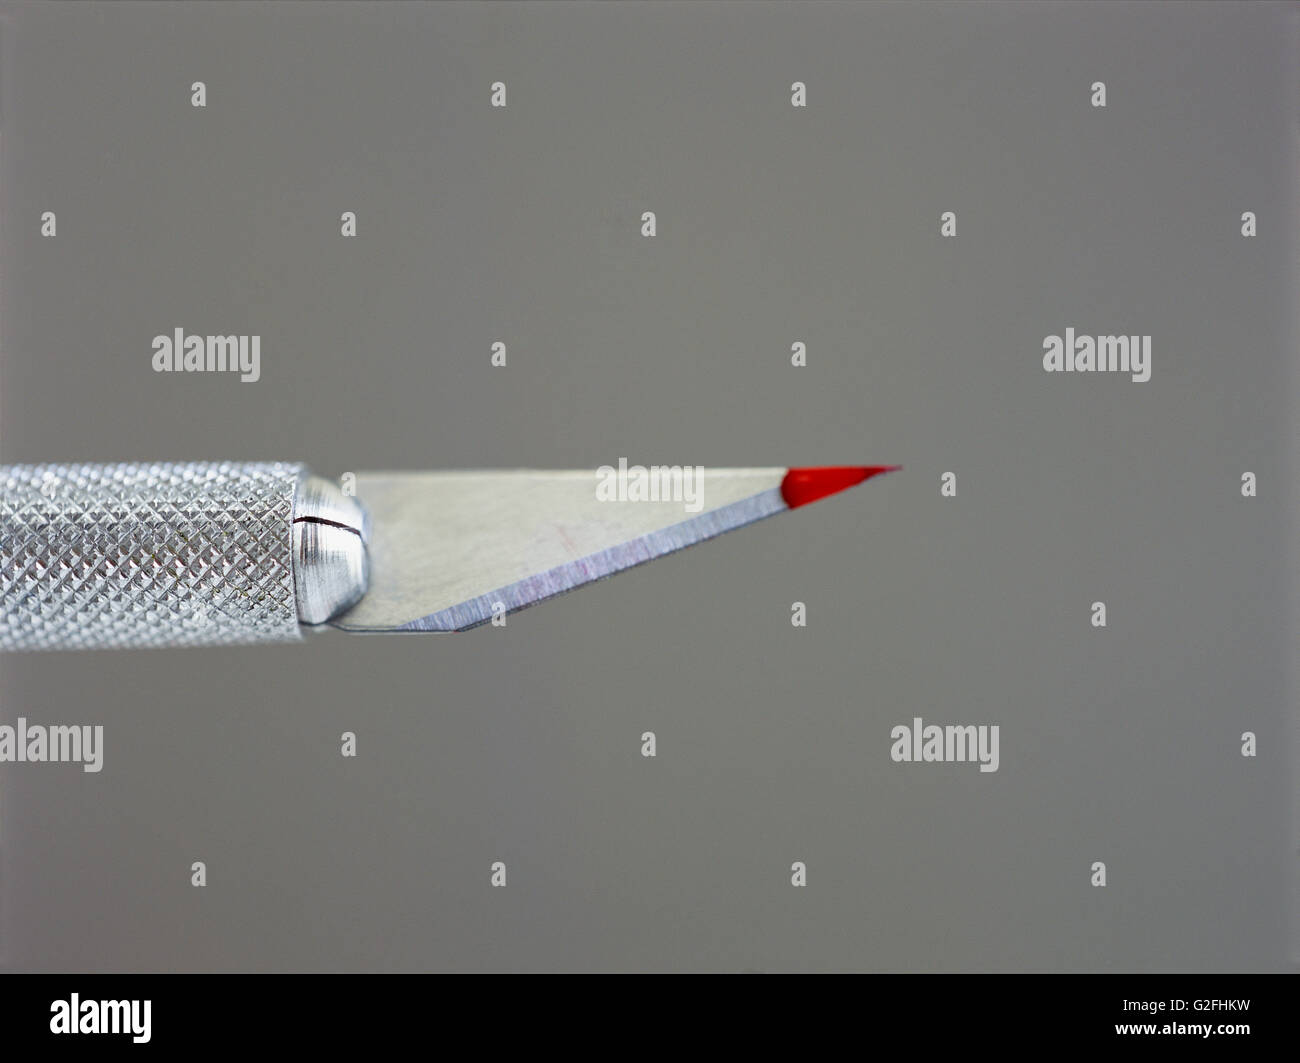 Blade with Red Tip - Stock Image